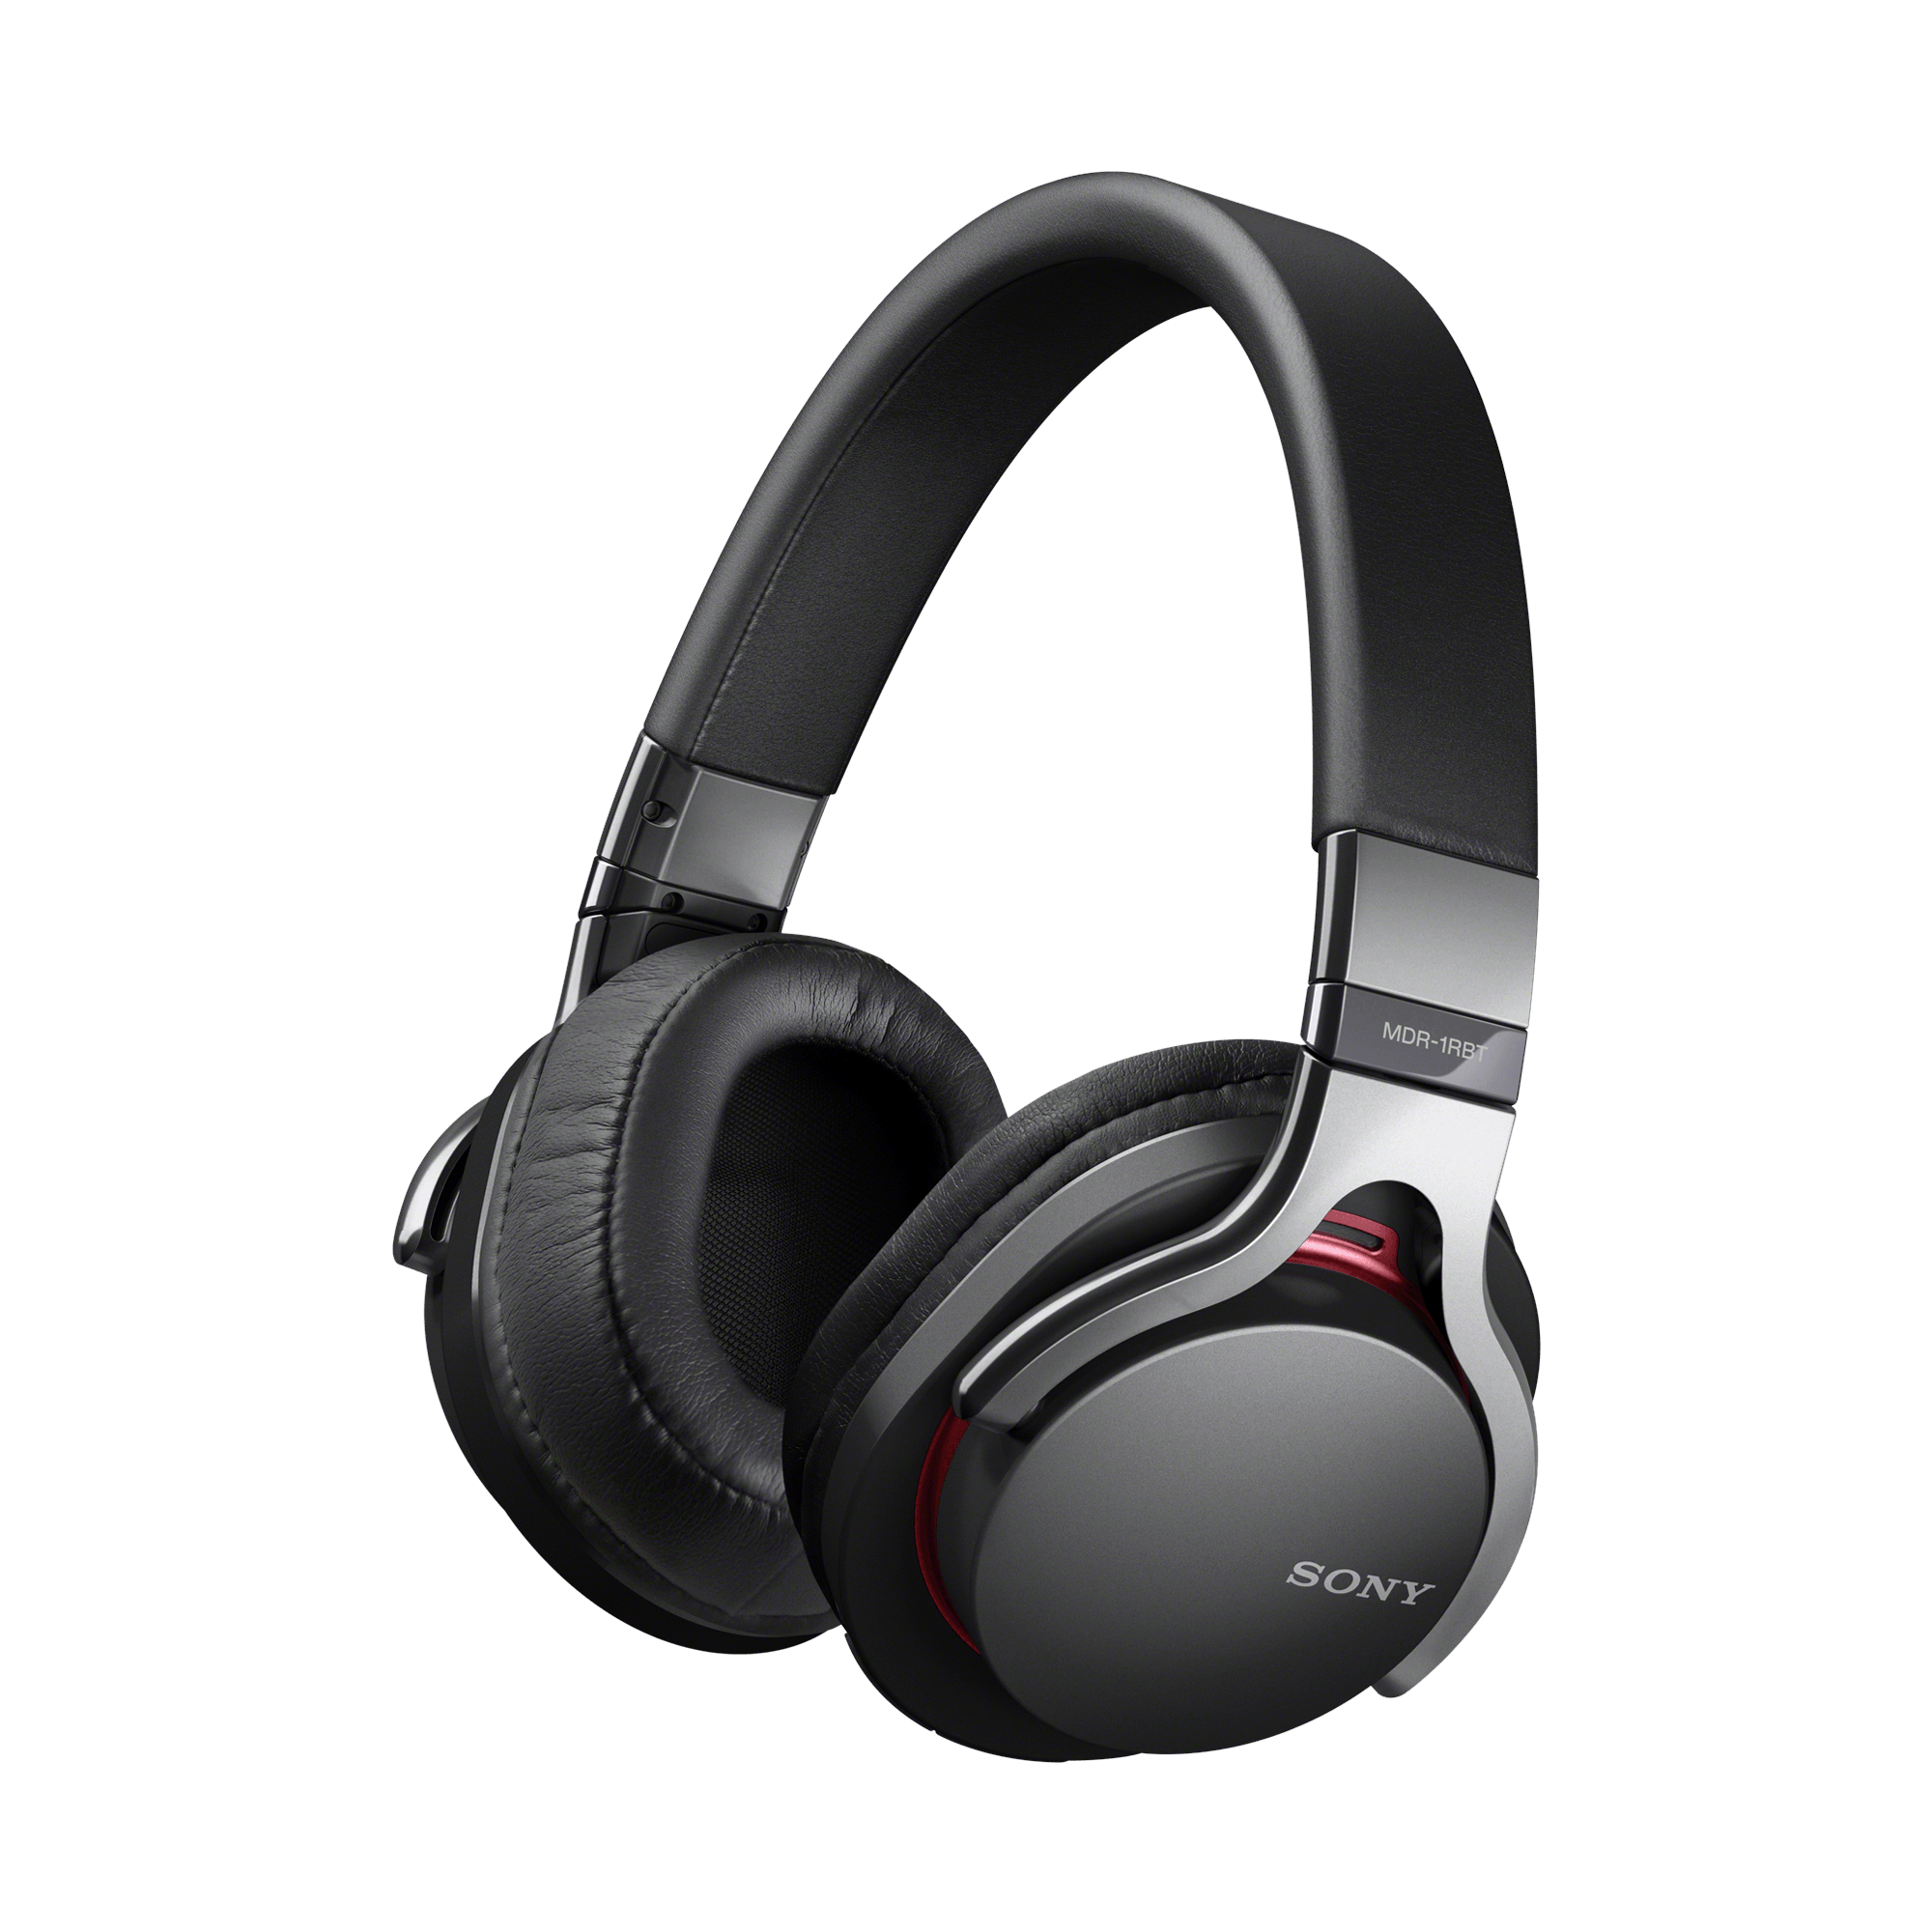 Headphone png. Music image purepng free